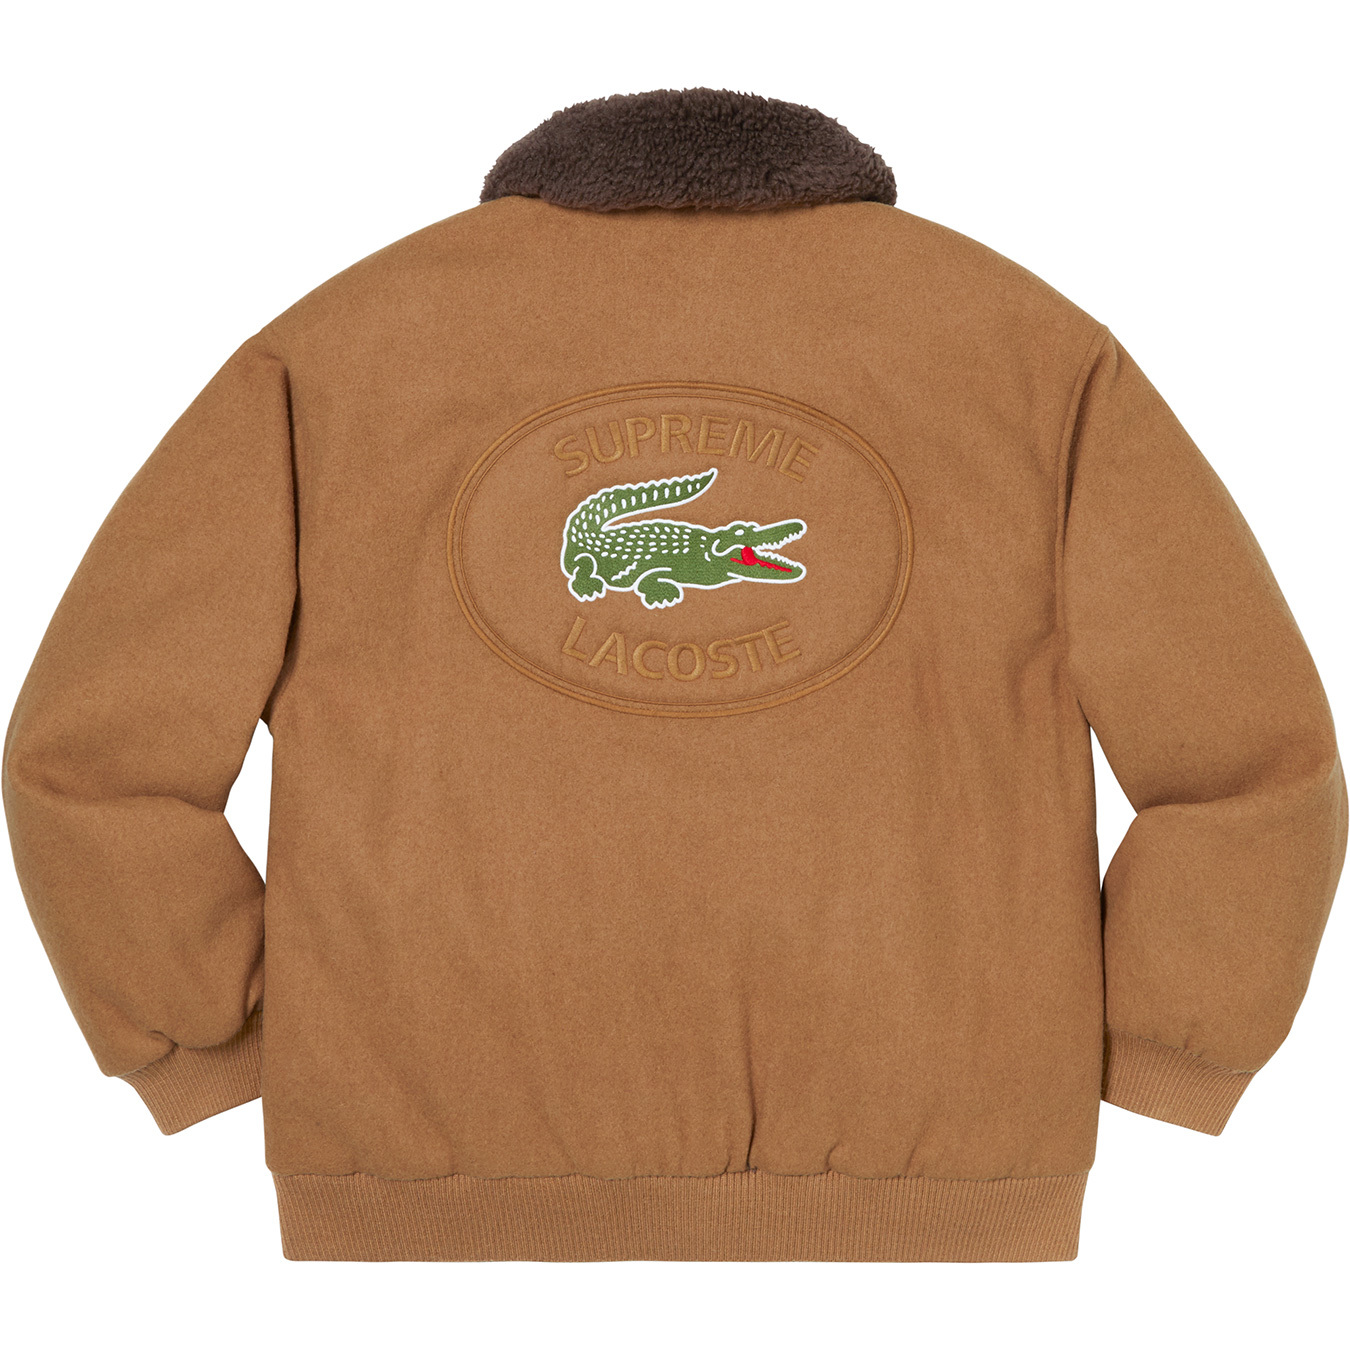 supreme-lacoste-19aw-19fw-collaboration-release-20190928-week5-wool-bomber-jacket